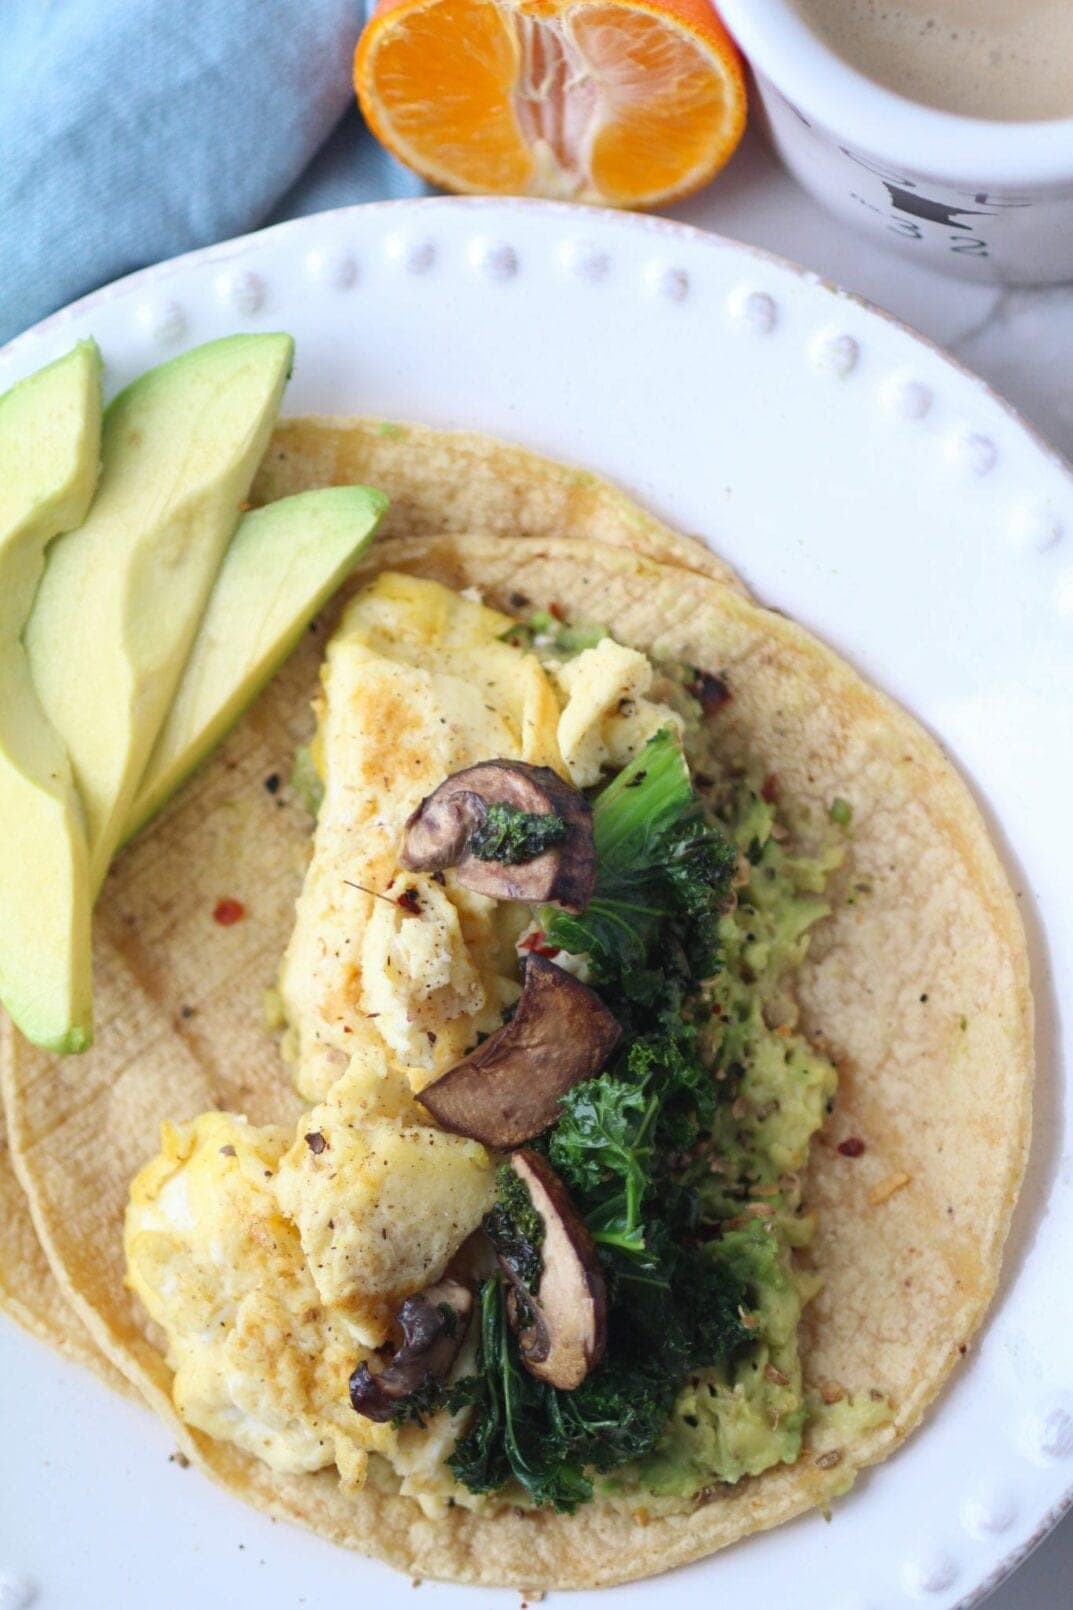 Avocado Tortilla + Egg Scramble